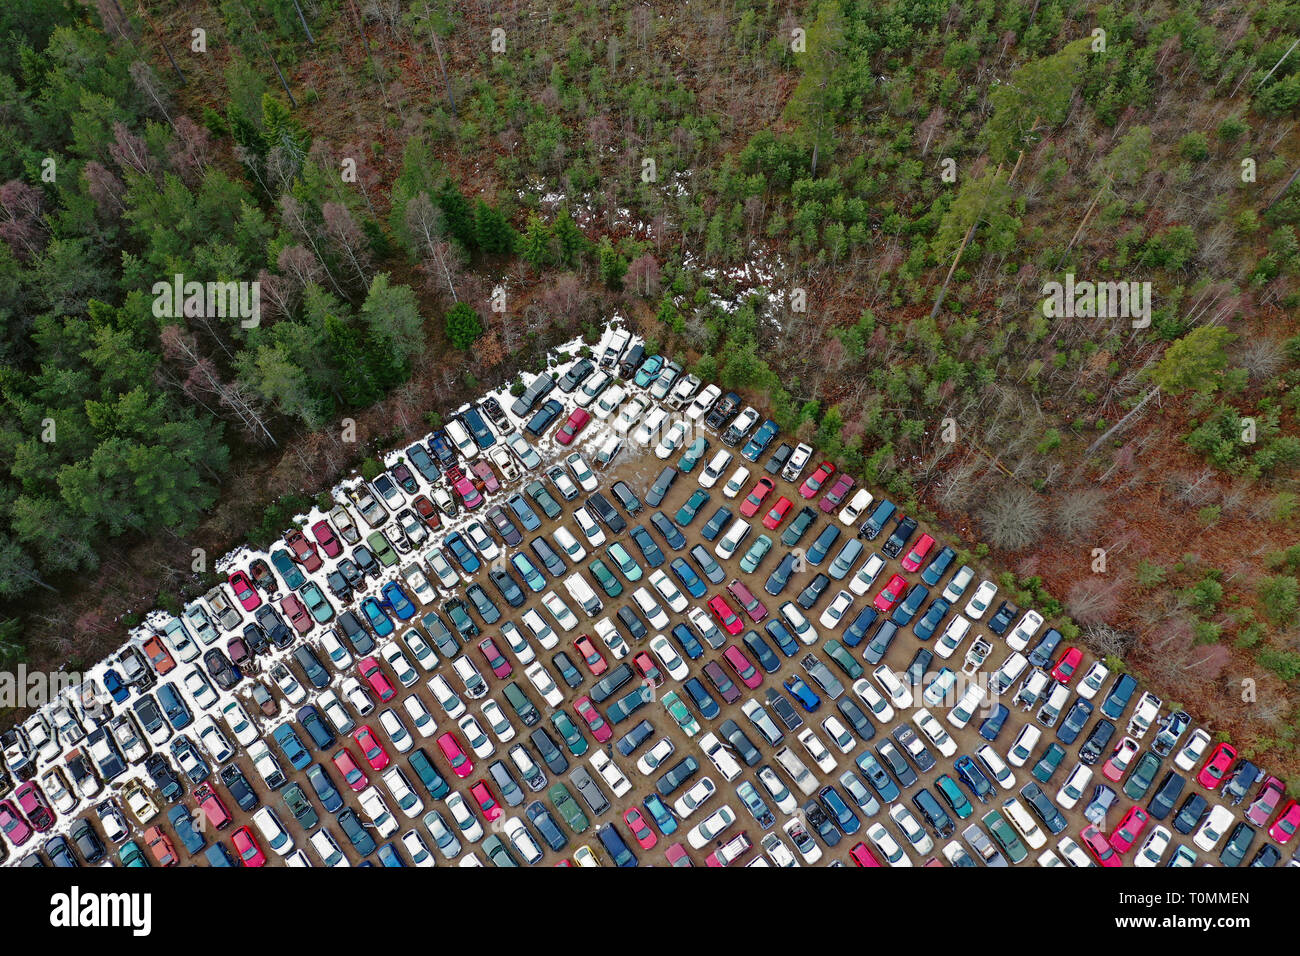 Sweden, Aerial view over a scrapyard for old cars.Photo Jeppe Gustafsson Stock Photo